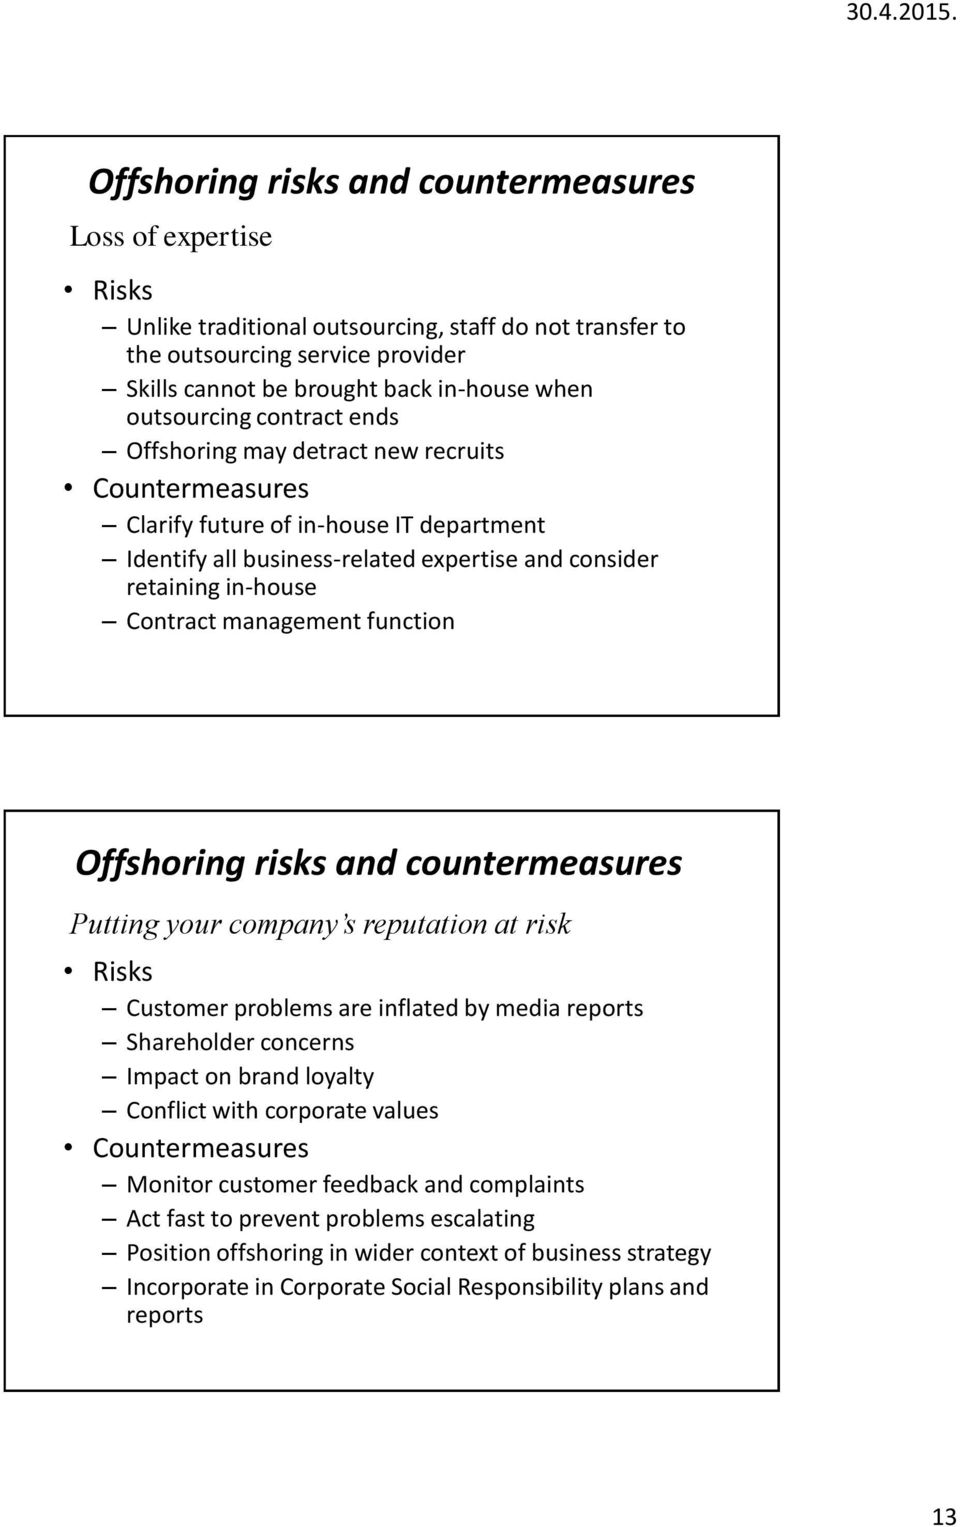 management function Offshoring risks and countermeasures Putting your company s reputation at risk Risks Customer problems are inflated by media reports Shareholder concerns Impact on brand loyalty